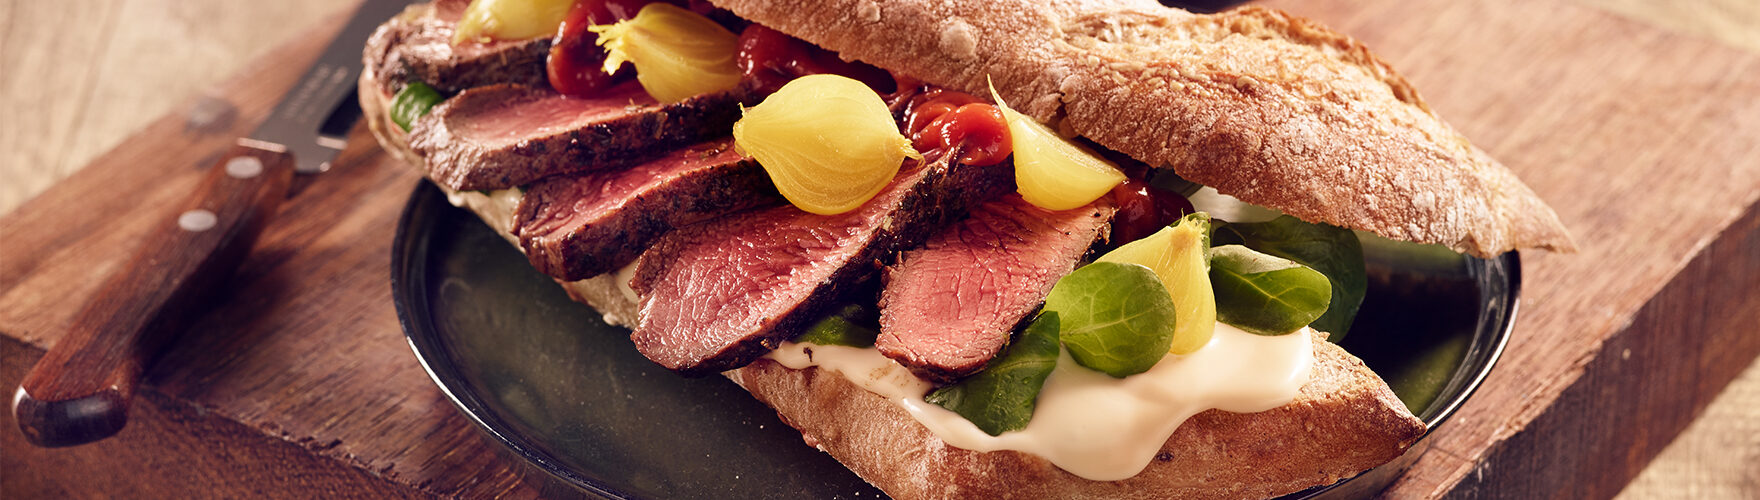 ERU Prestige Steak Sandwich